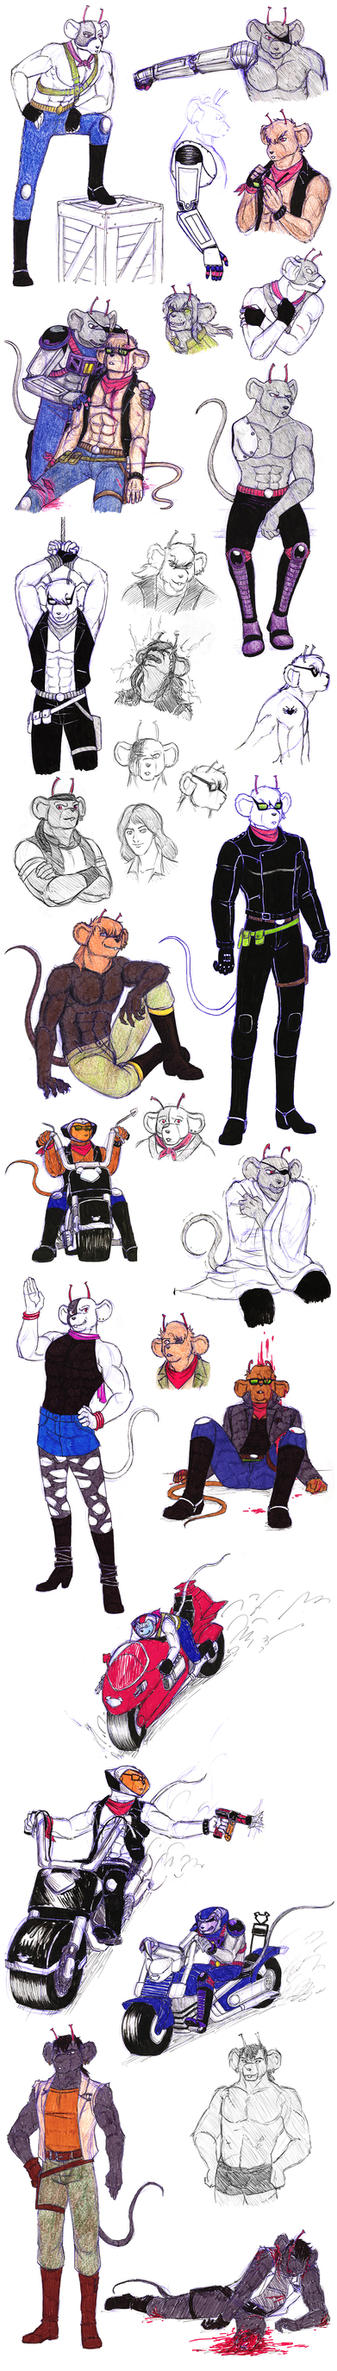 Sketchdump 15 - Biker Mice from Mars by Rosyan